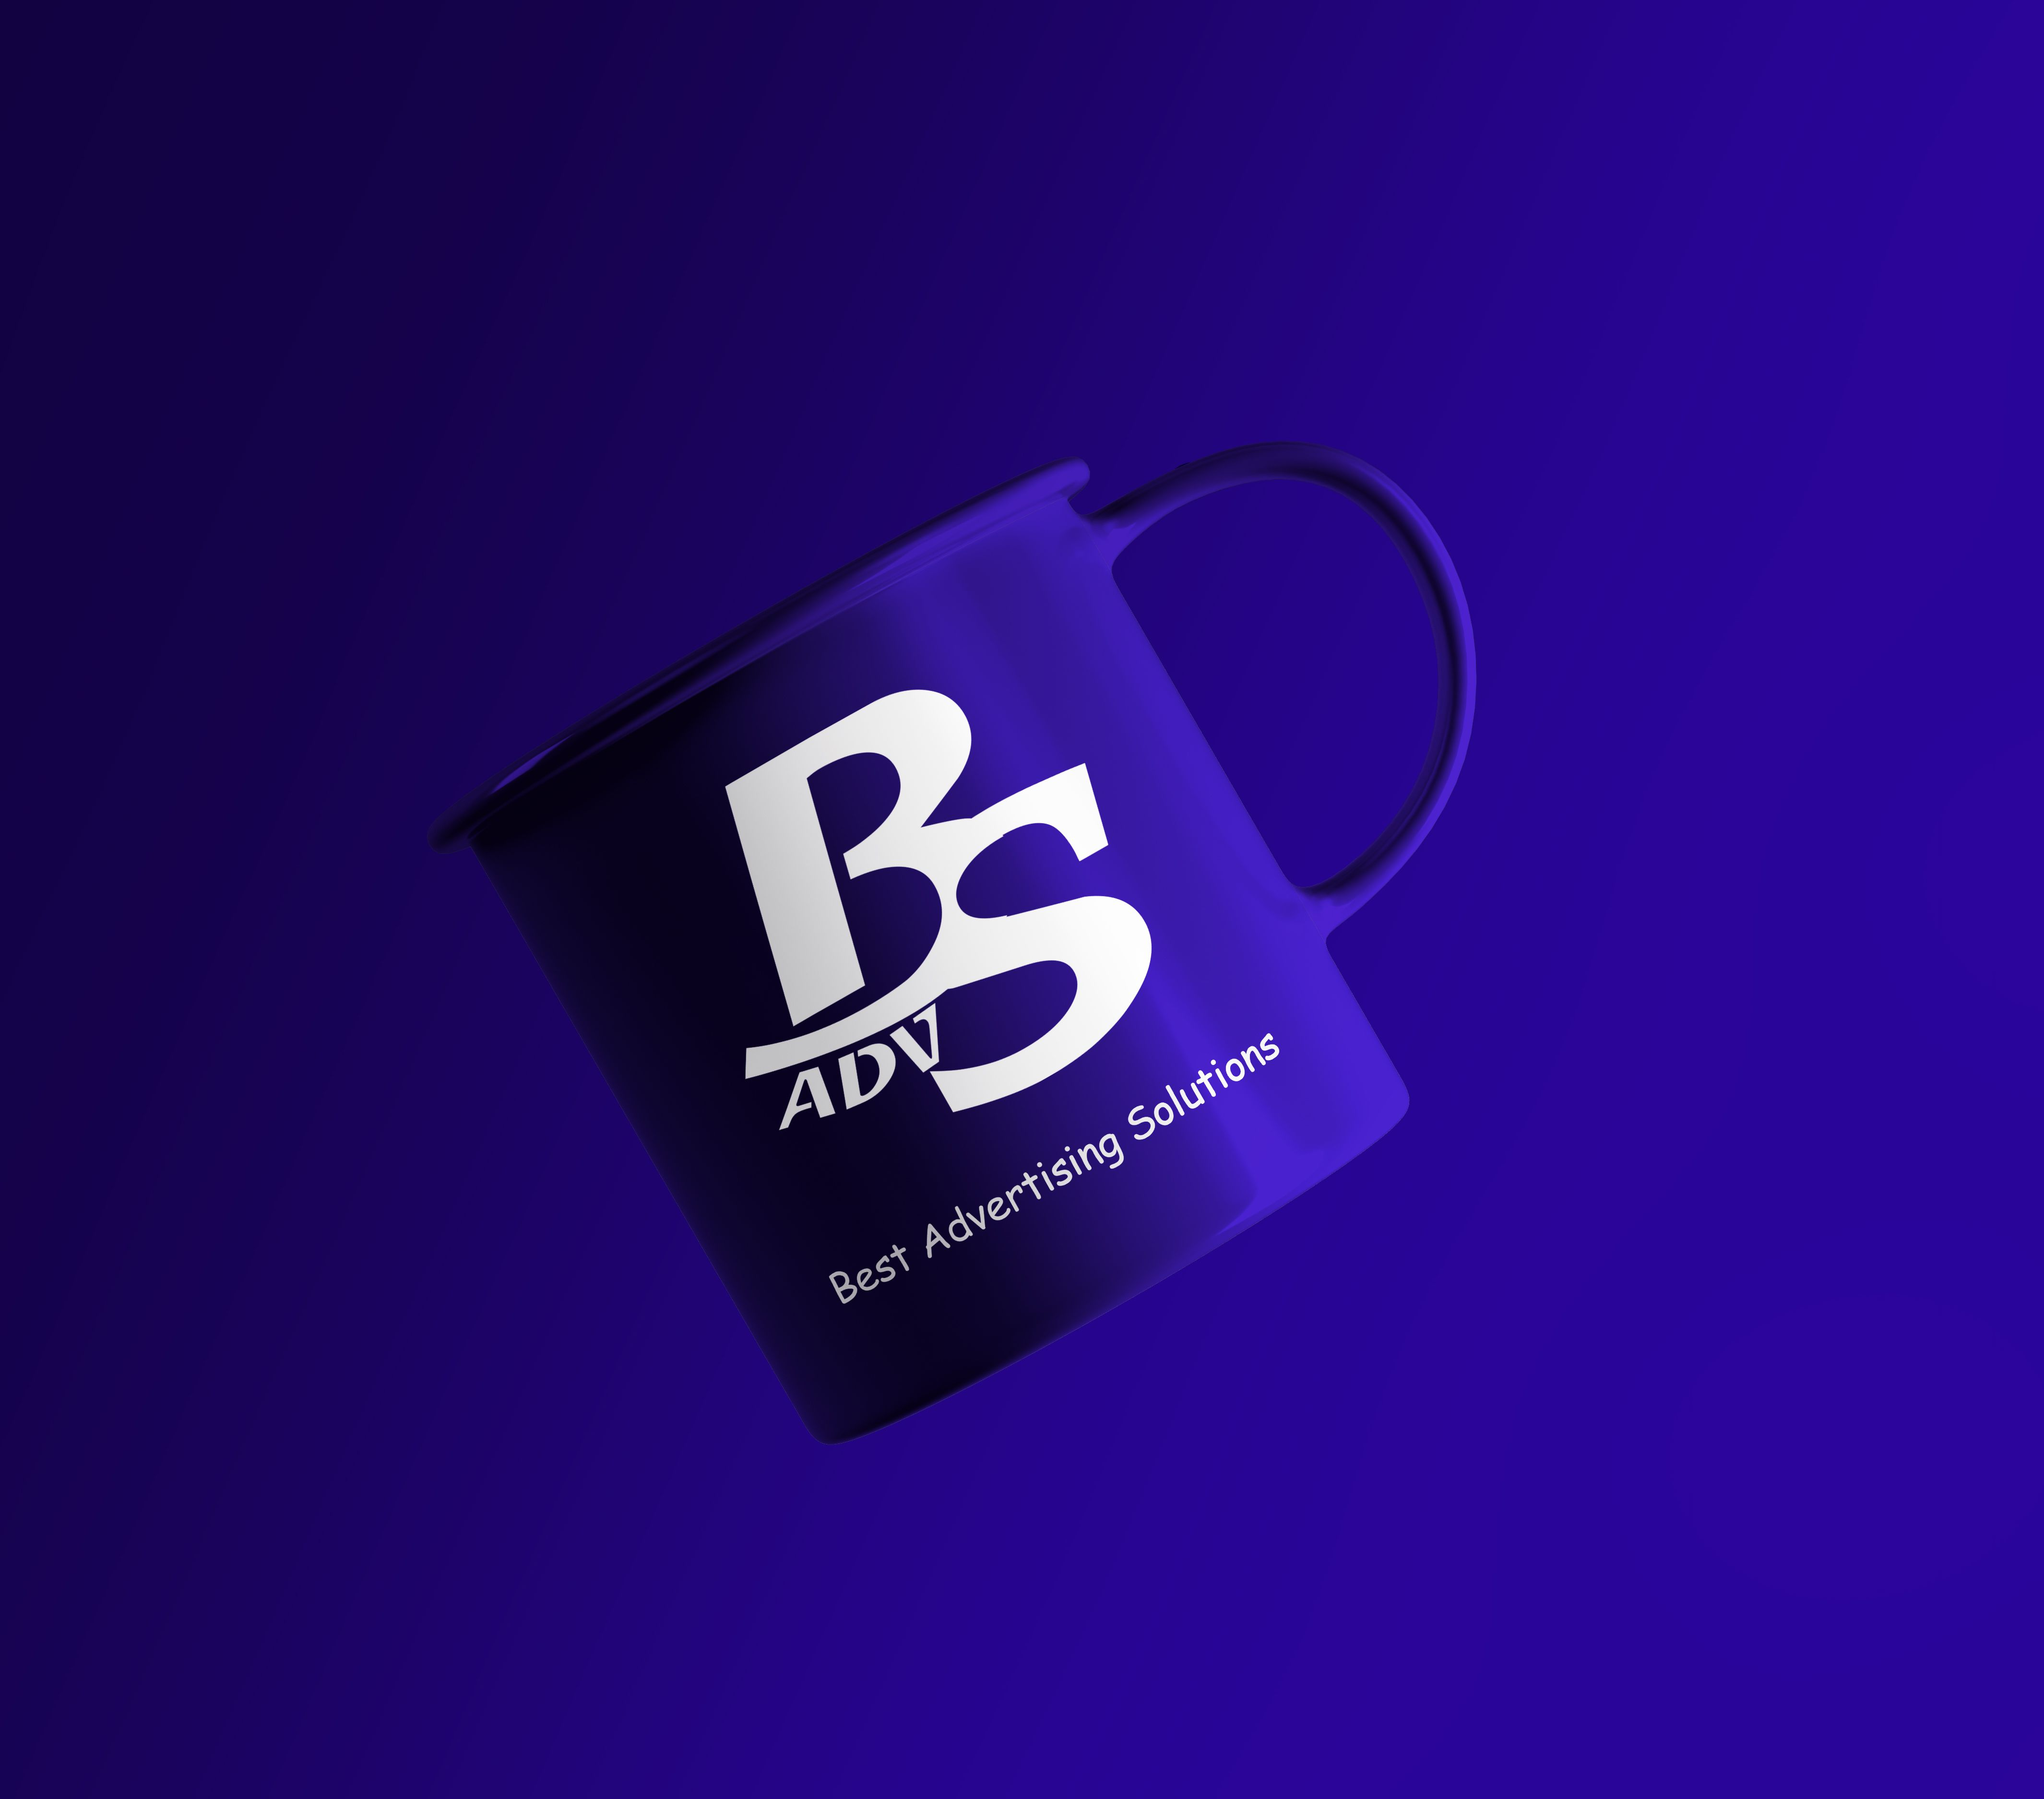 Cup Sticker Printing Services In Jeddah In 2020 Print Stickers Advertising Services Printing Services